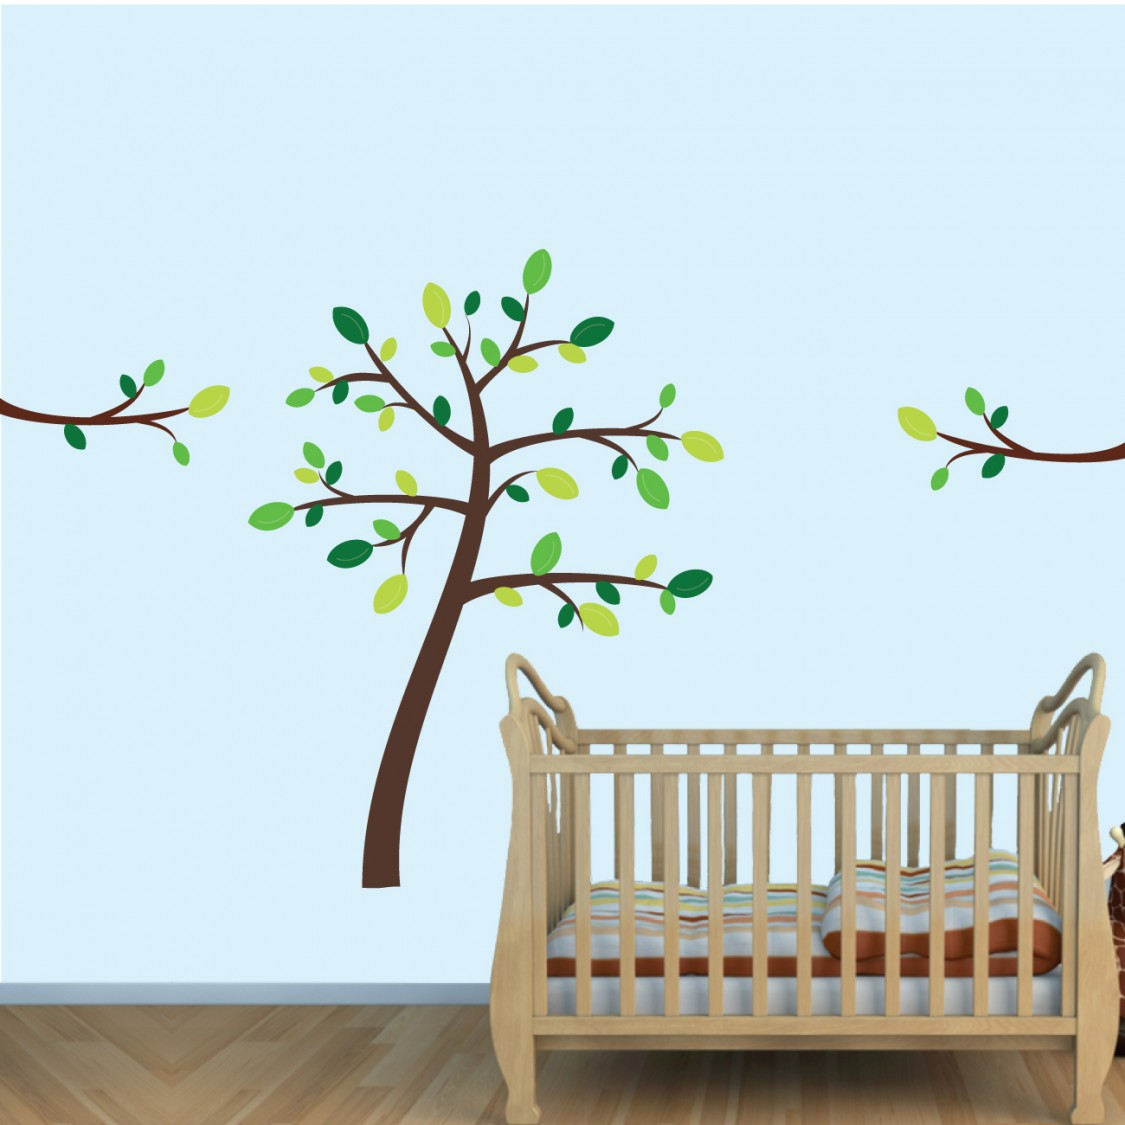 Green U0026 Brown Jungle Tree Wall Decals U0026 Tree Branch Wall Decor For Boy